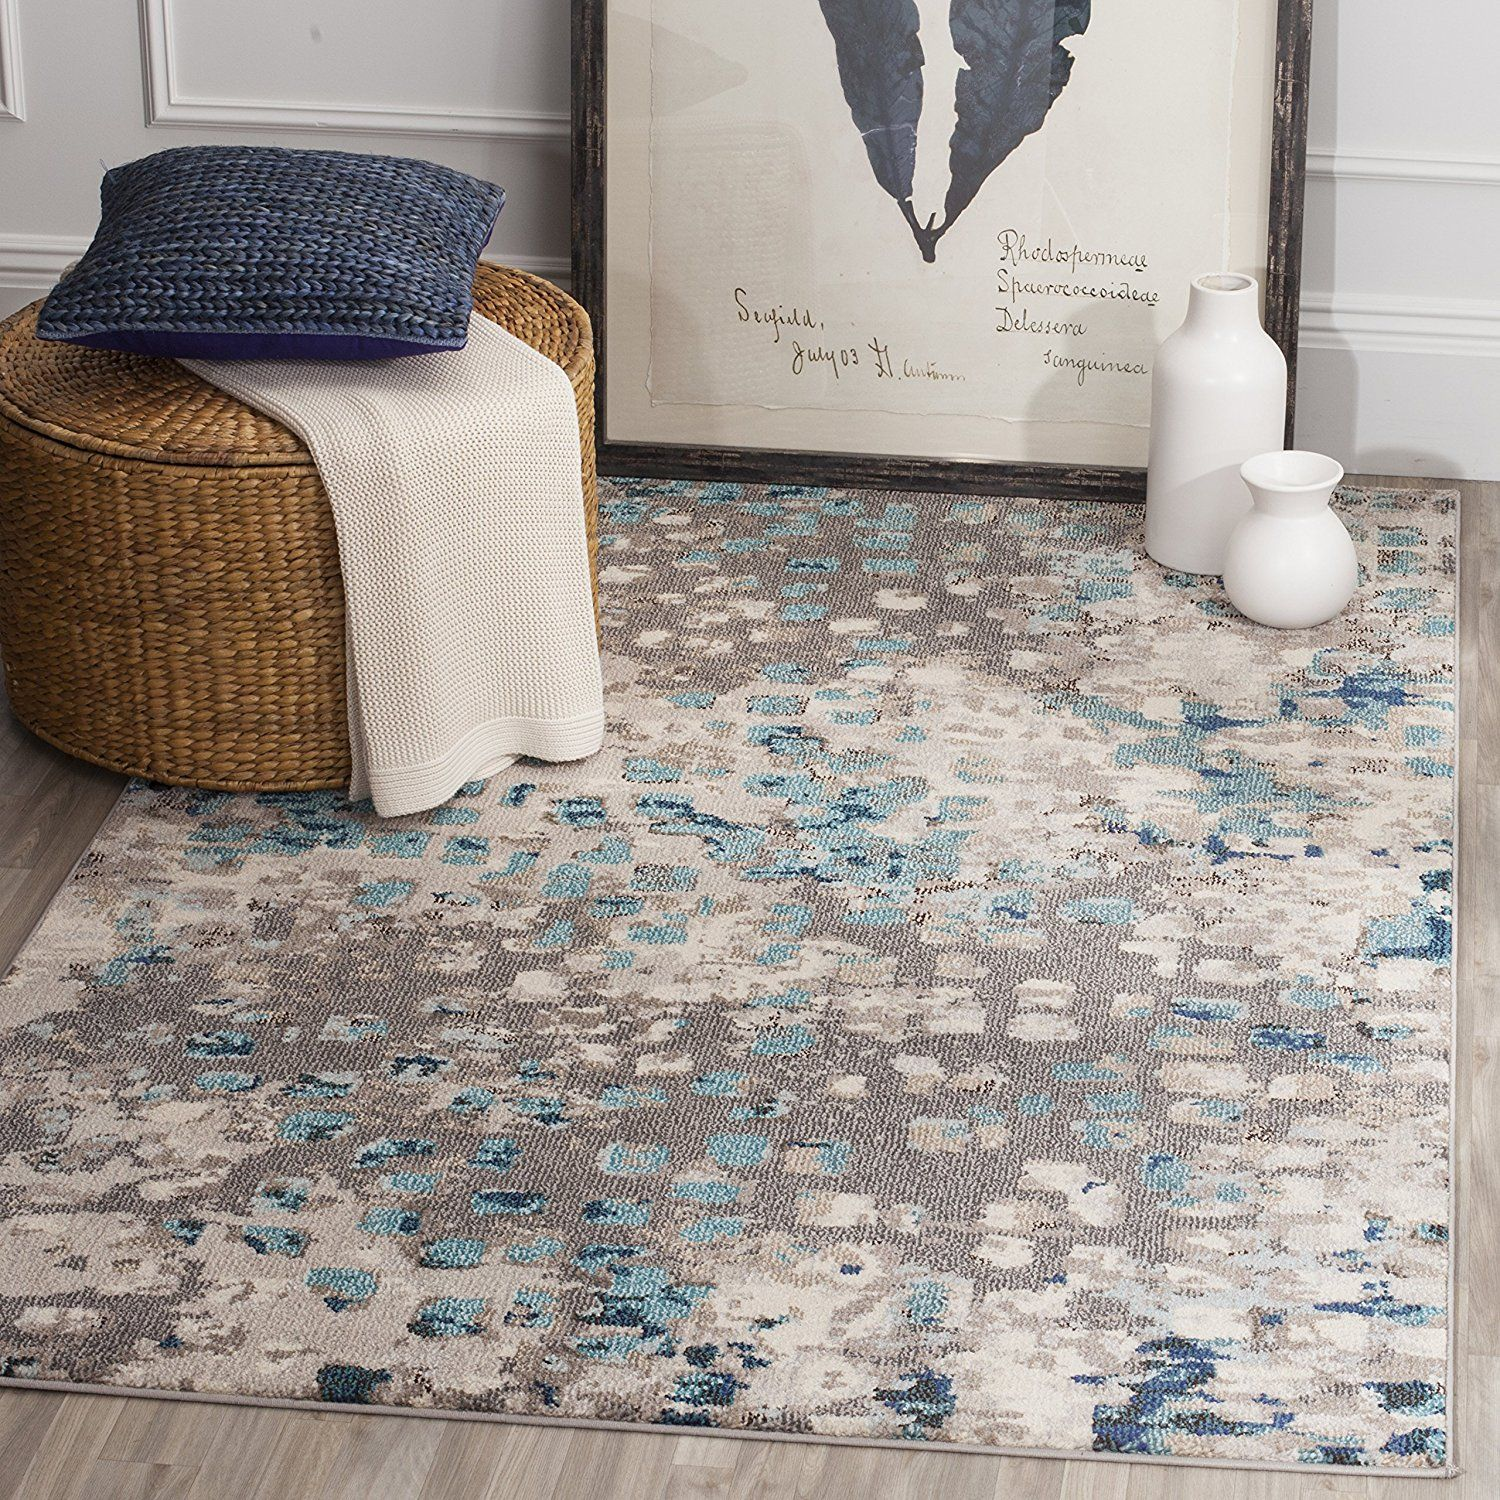 Amazon Com Safavieh Monaco Collection Mnc225e Modern Abstract Watercolor Grey And Light Blue Distressed Area Rug Light Blue Area Rug Safavieh Monaco Cool Rugs